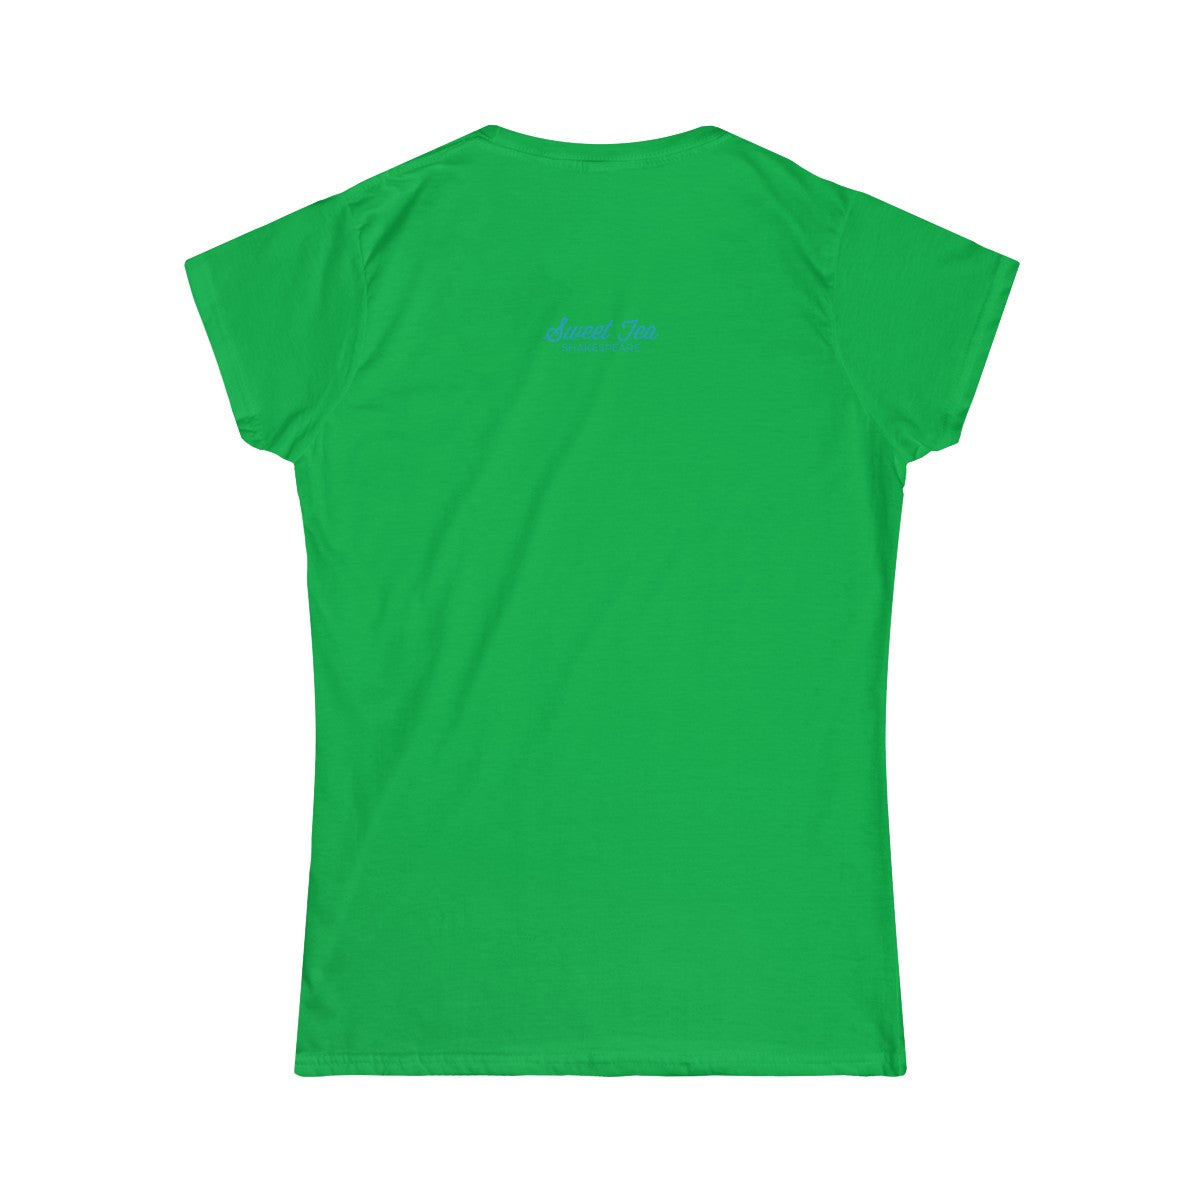 The Shirt is Ajar Women's Softstyle Tee